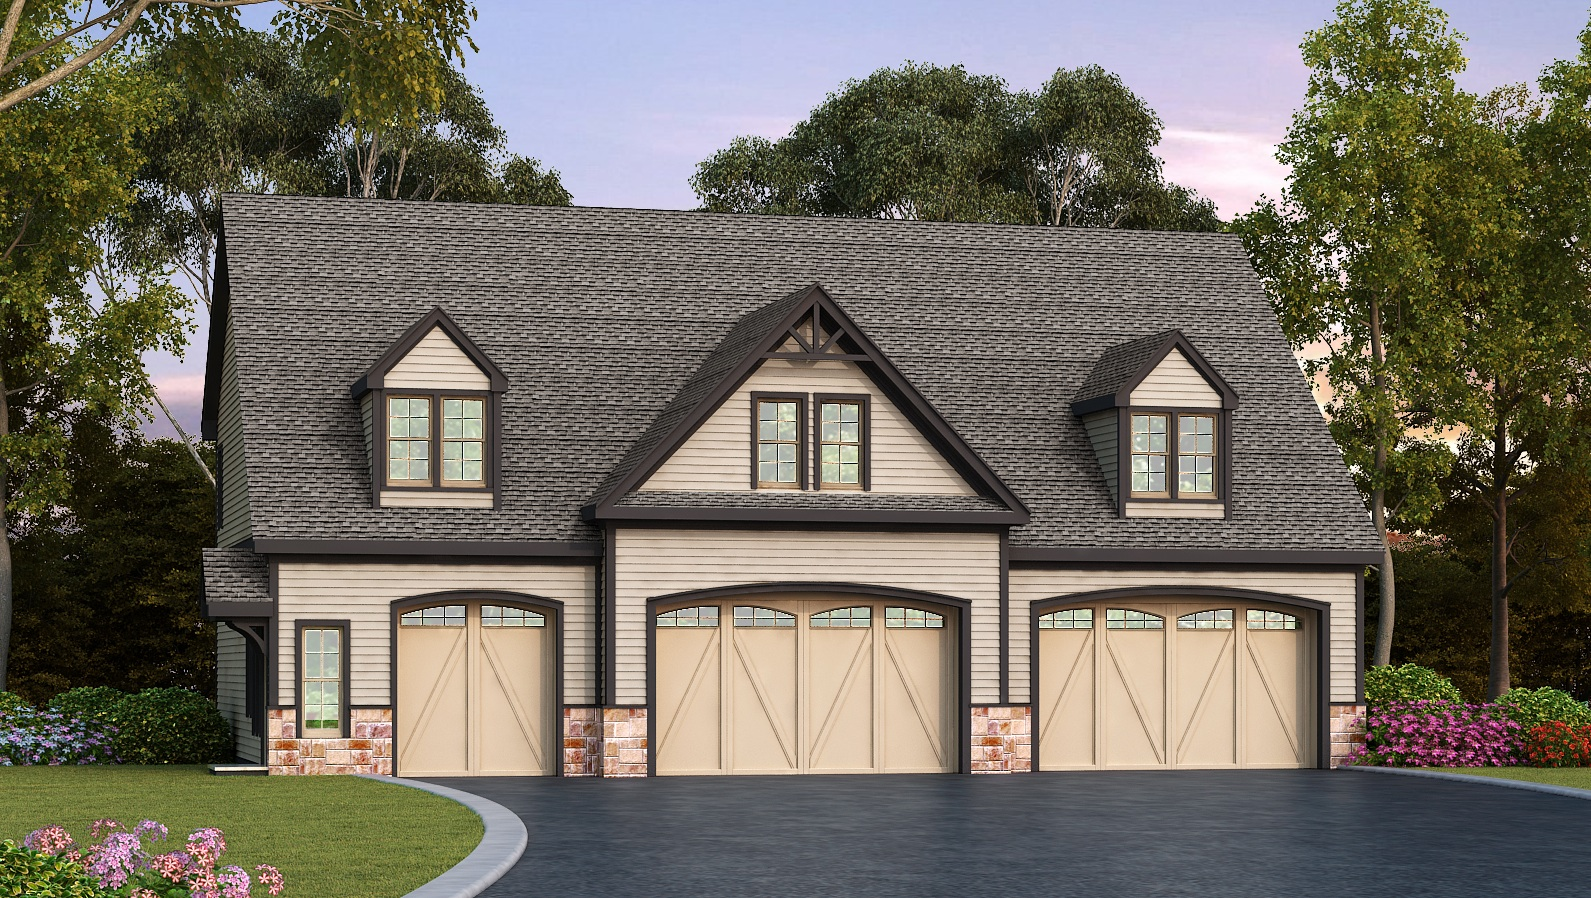 Residential 5 car garage plan 29870rl 2nd floor master for How big is a two car garage